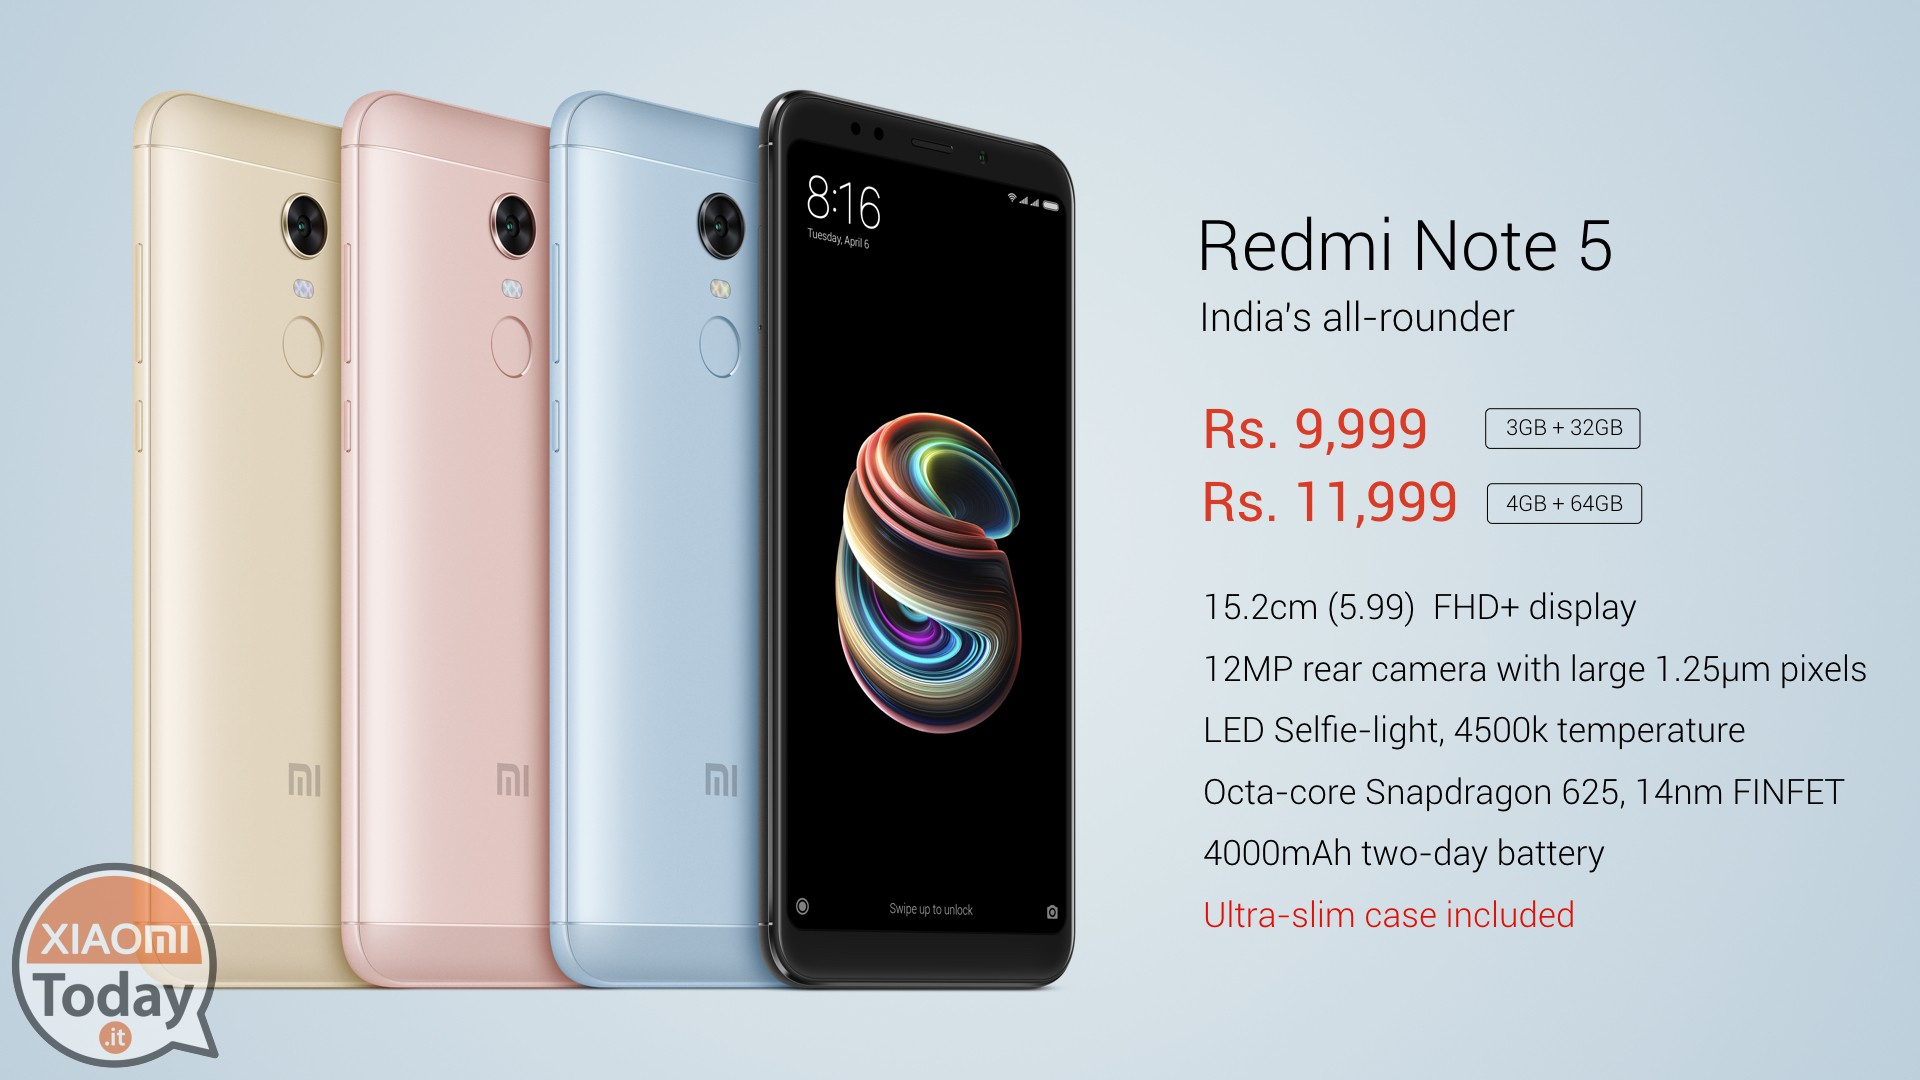 Live Event Presentation Xiaomi Redmi Notes 5 Note Pro Ram 6gb Rom 64gb New Original In Fact With Enormous Praise The Is Presented Becoming First Official Smartphone To Be Launched This 2018